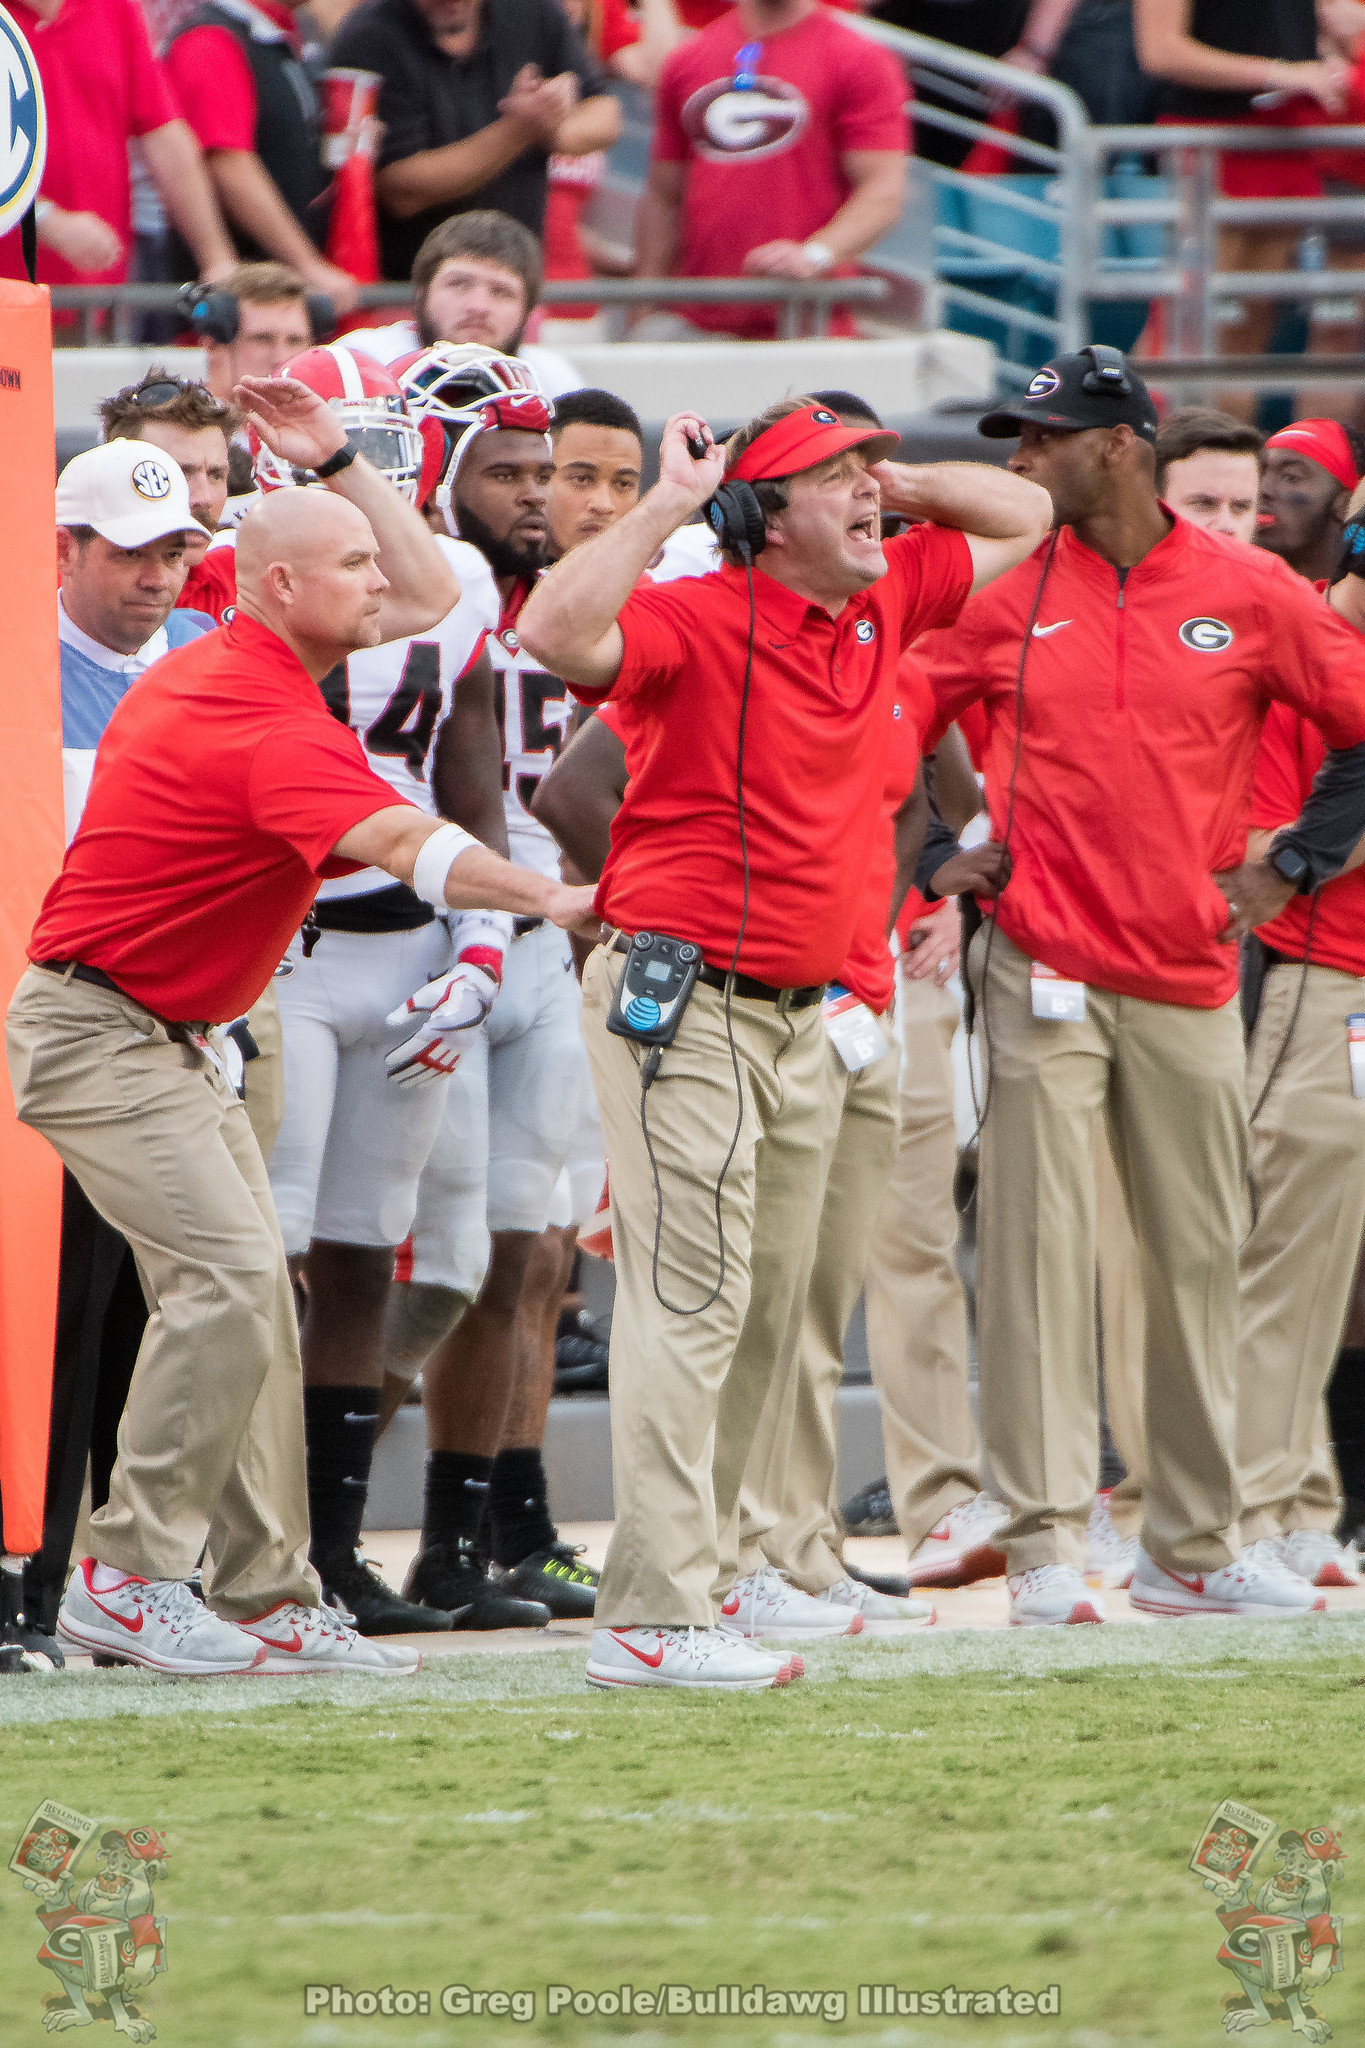 Georgia's Strength and Conditioning coach Scott Sinclair holding back head coach Kirby Smart